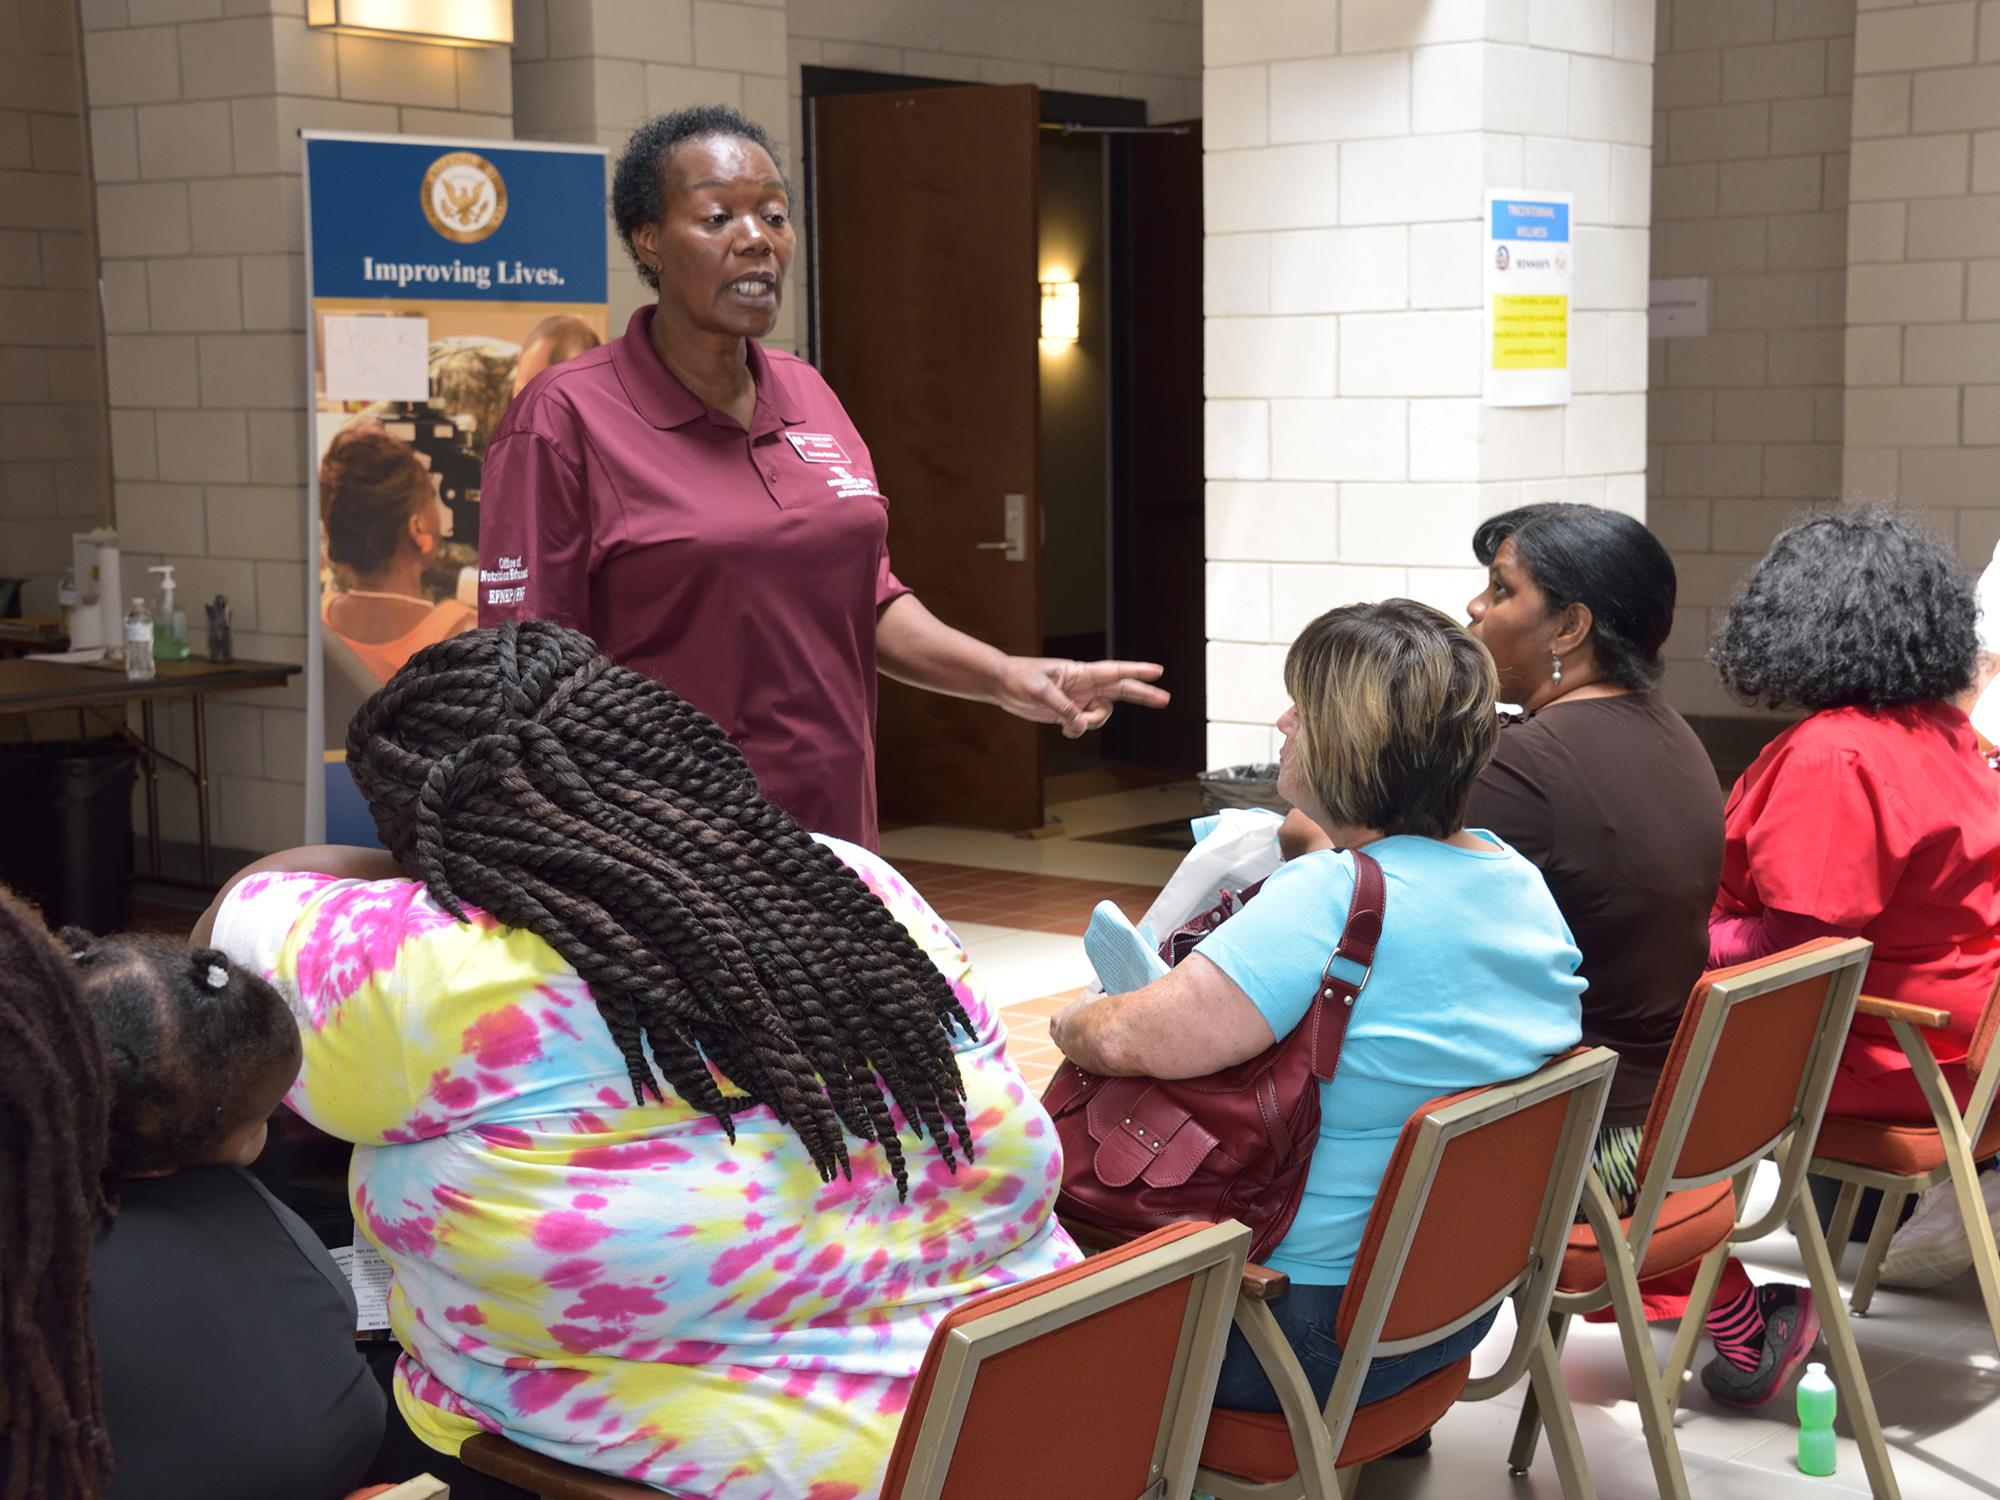 Dannie Bolden, Wilkinson County nutrition educator with the Mississippi State University Extension Service, speaks to participants of the wellness event about reducing fat and sugars in their diets in Natchez, Mississippi, on Aug. 9, 2016. (Photo by MSU Extension Service/Kevin Hudson)